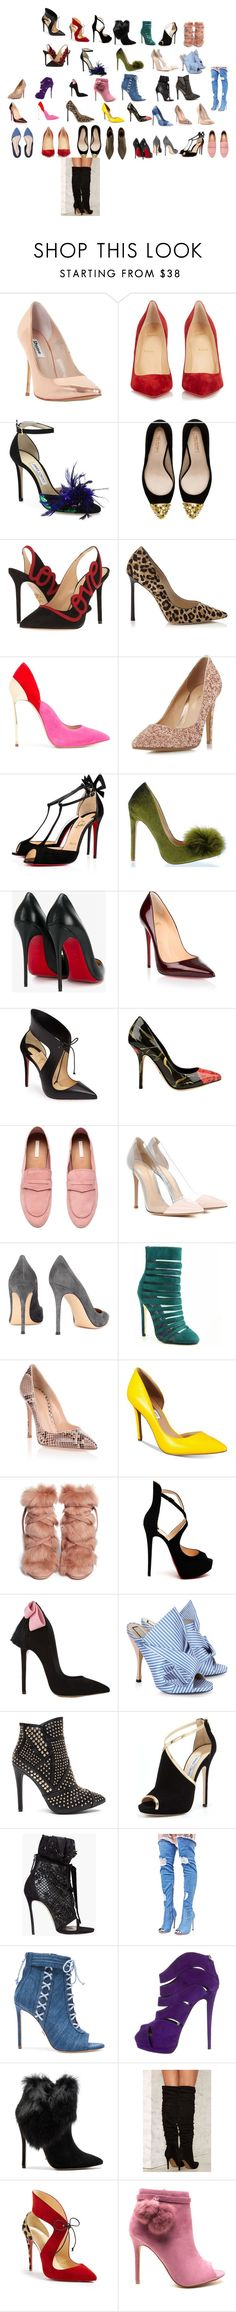 """""""MY FAVORITE SHOE"""" by anelson007 on Polyvore featuring Dune, Christian Louboutin, Jimmy Choo, Zara, Charlotte Olympia, Casadei, Head Over Heels by Dune, Dolce&Gabbana, Gianvito Rossi and INC International Concepts"""